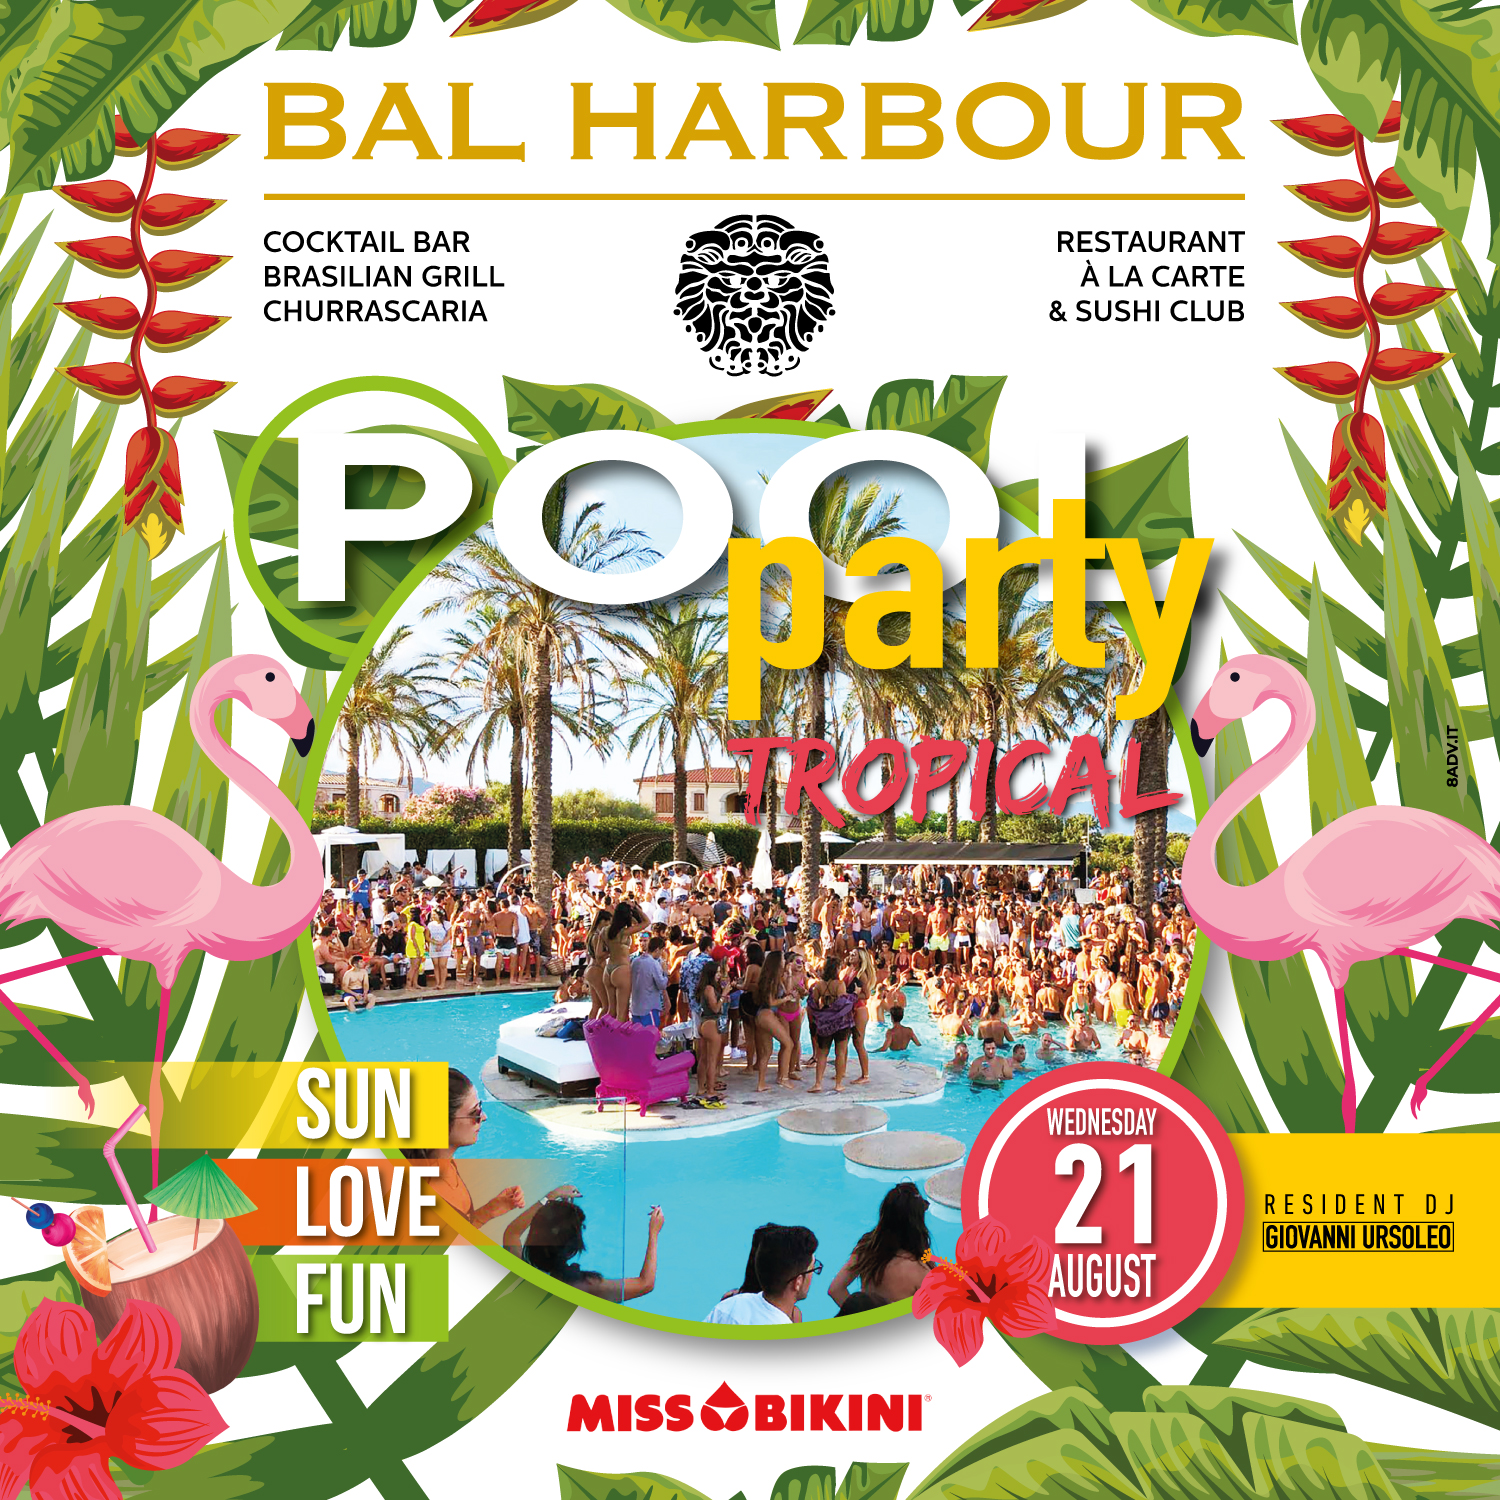 tropical pool party bal harbour san teodoro summer sardegna